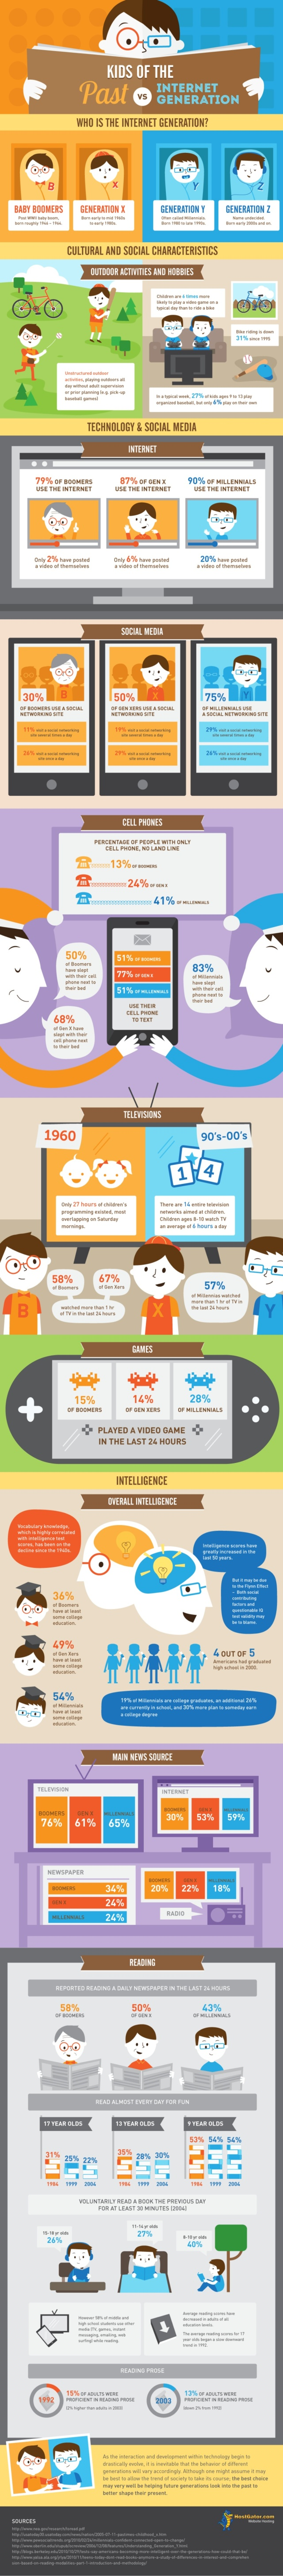 InternetGen_infographic